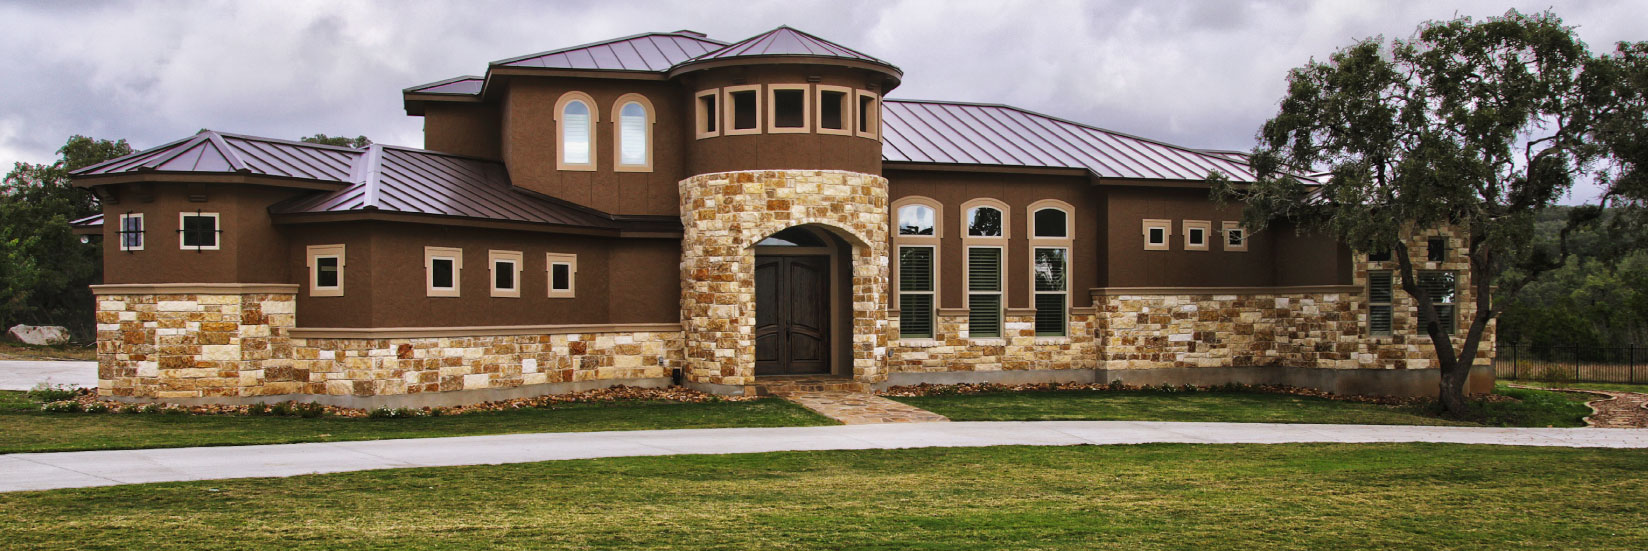 Copper Ridge in New Braunfels San Antonio